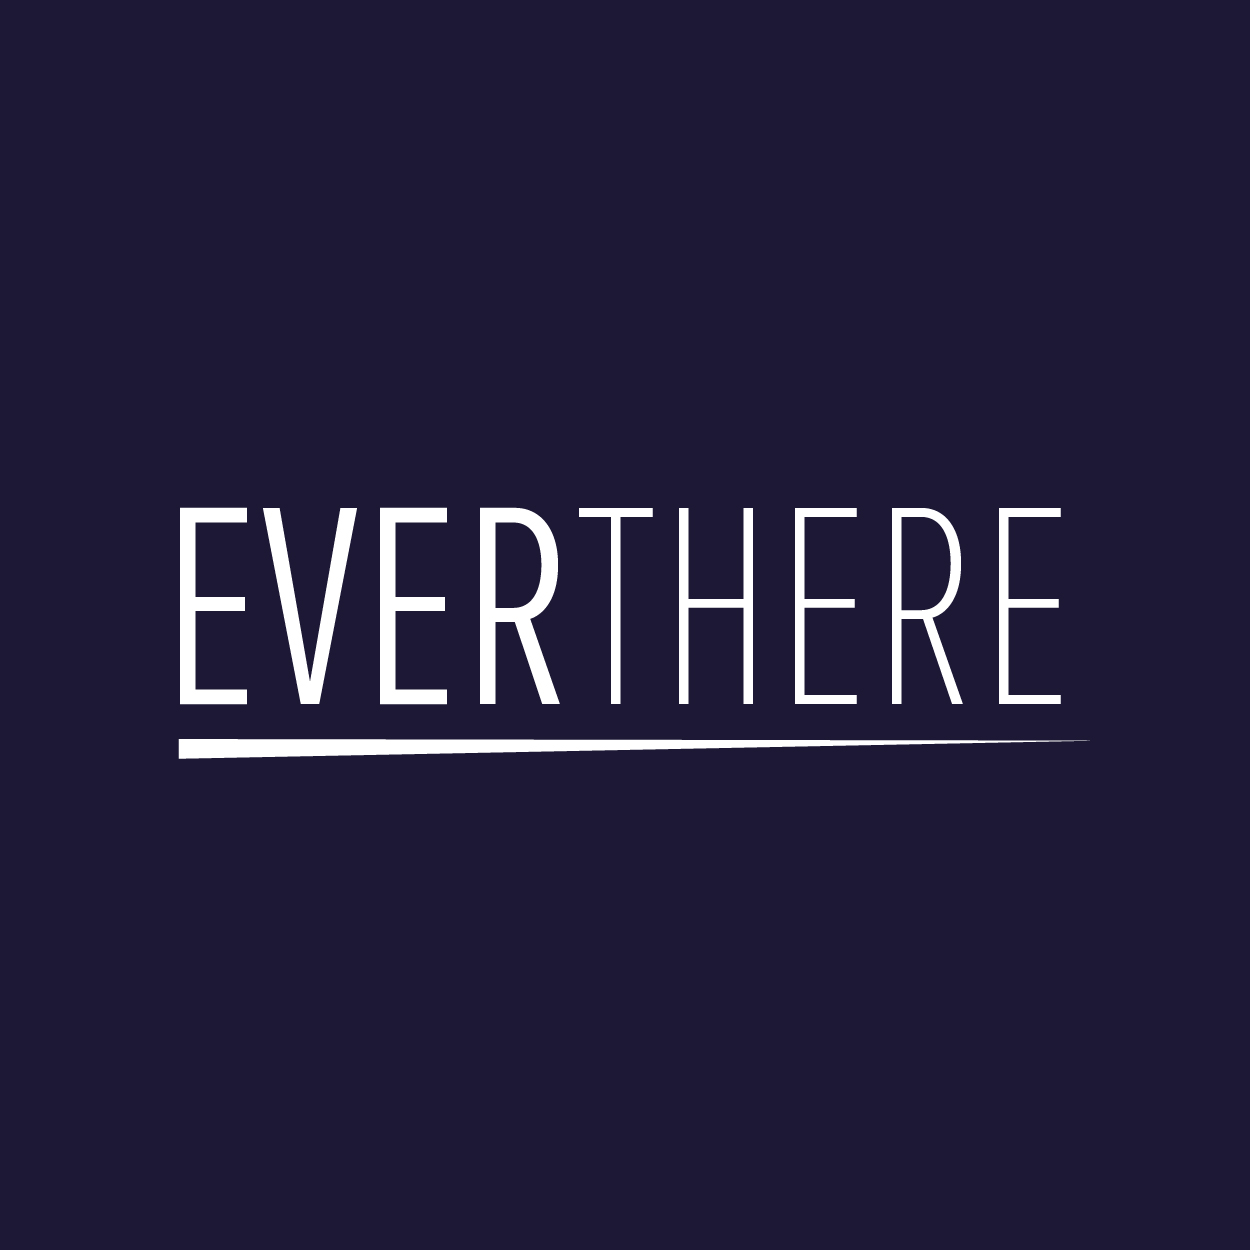 EverThere Technographics